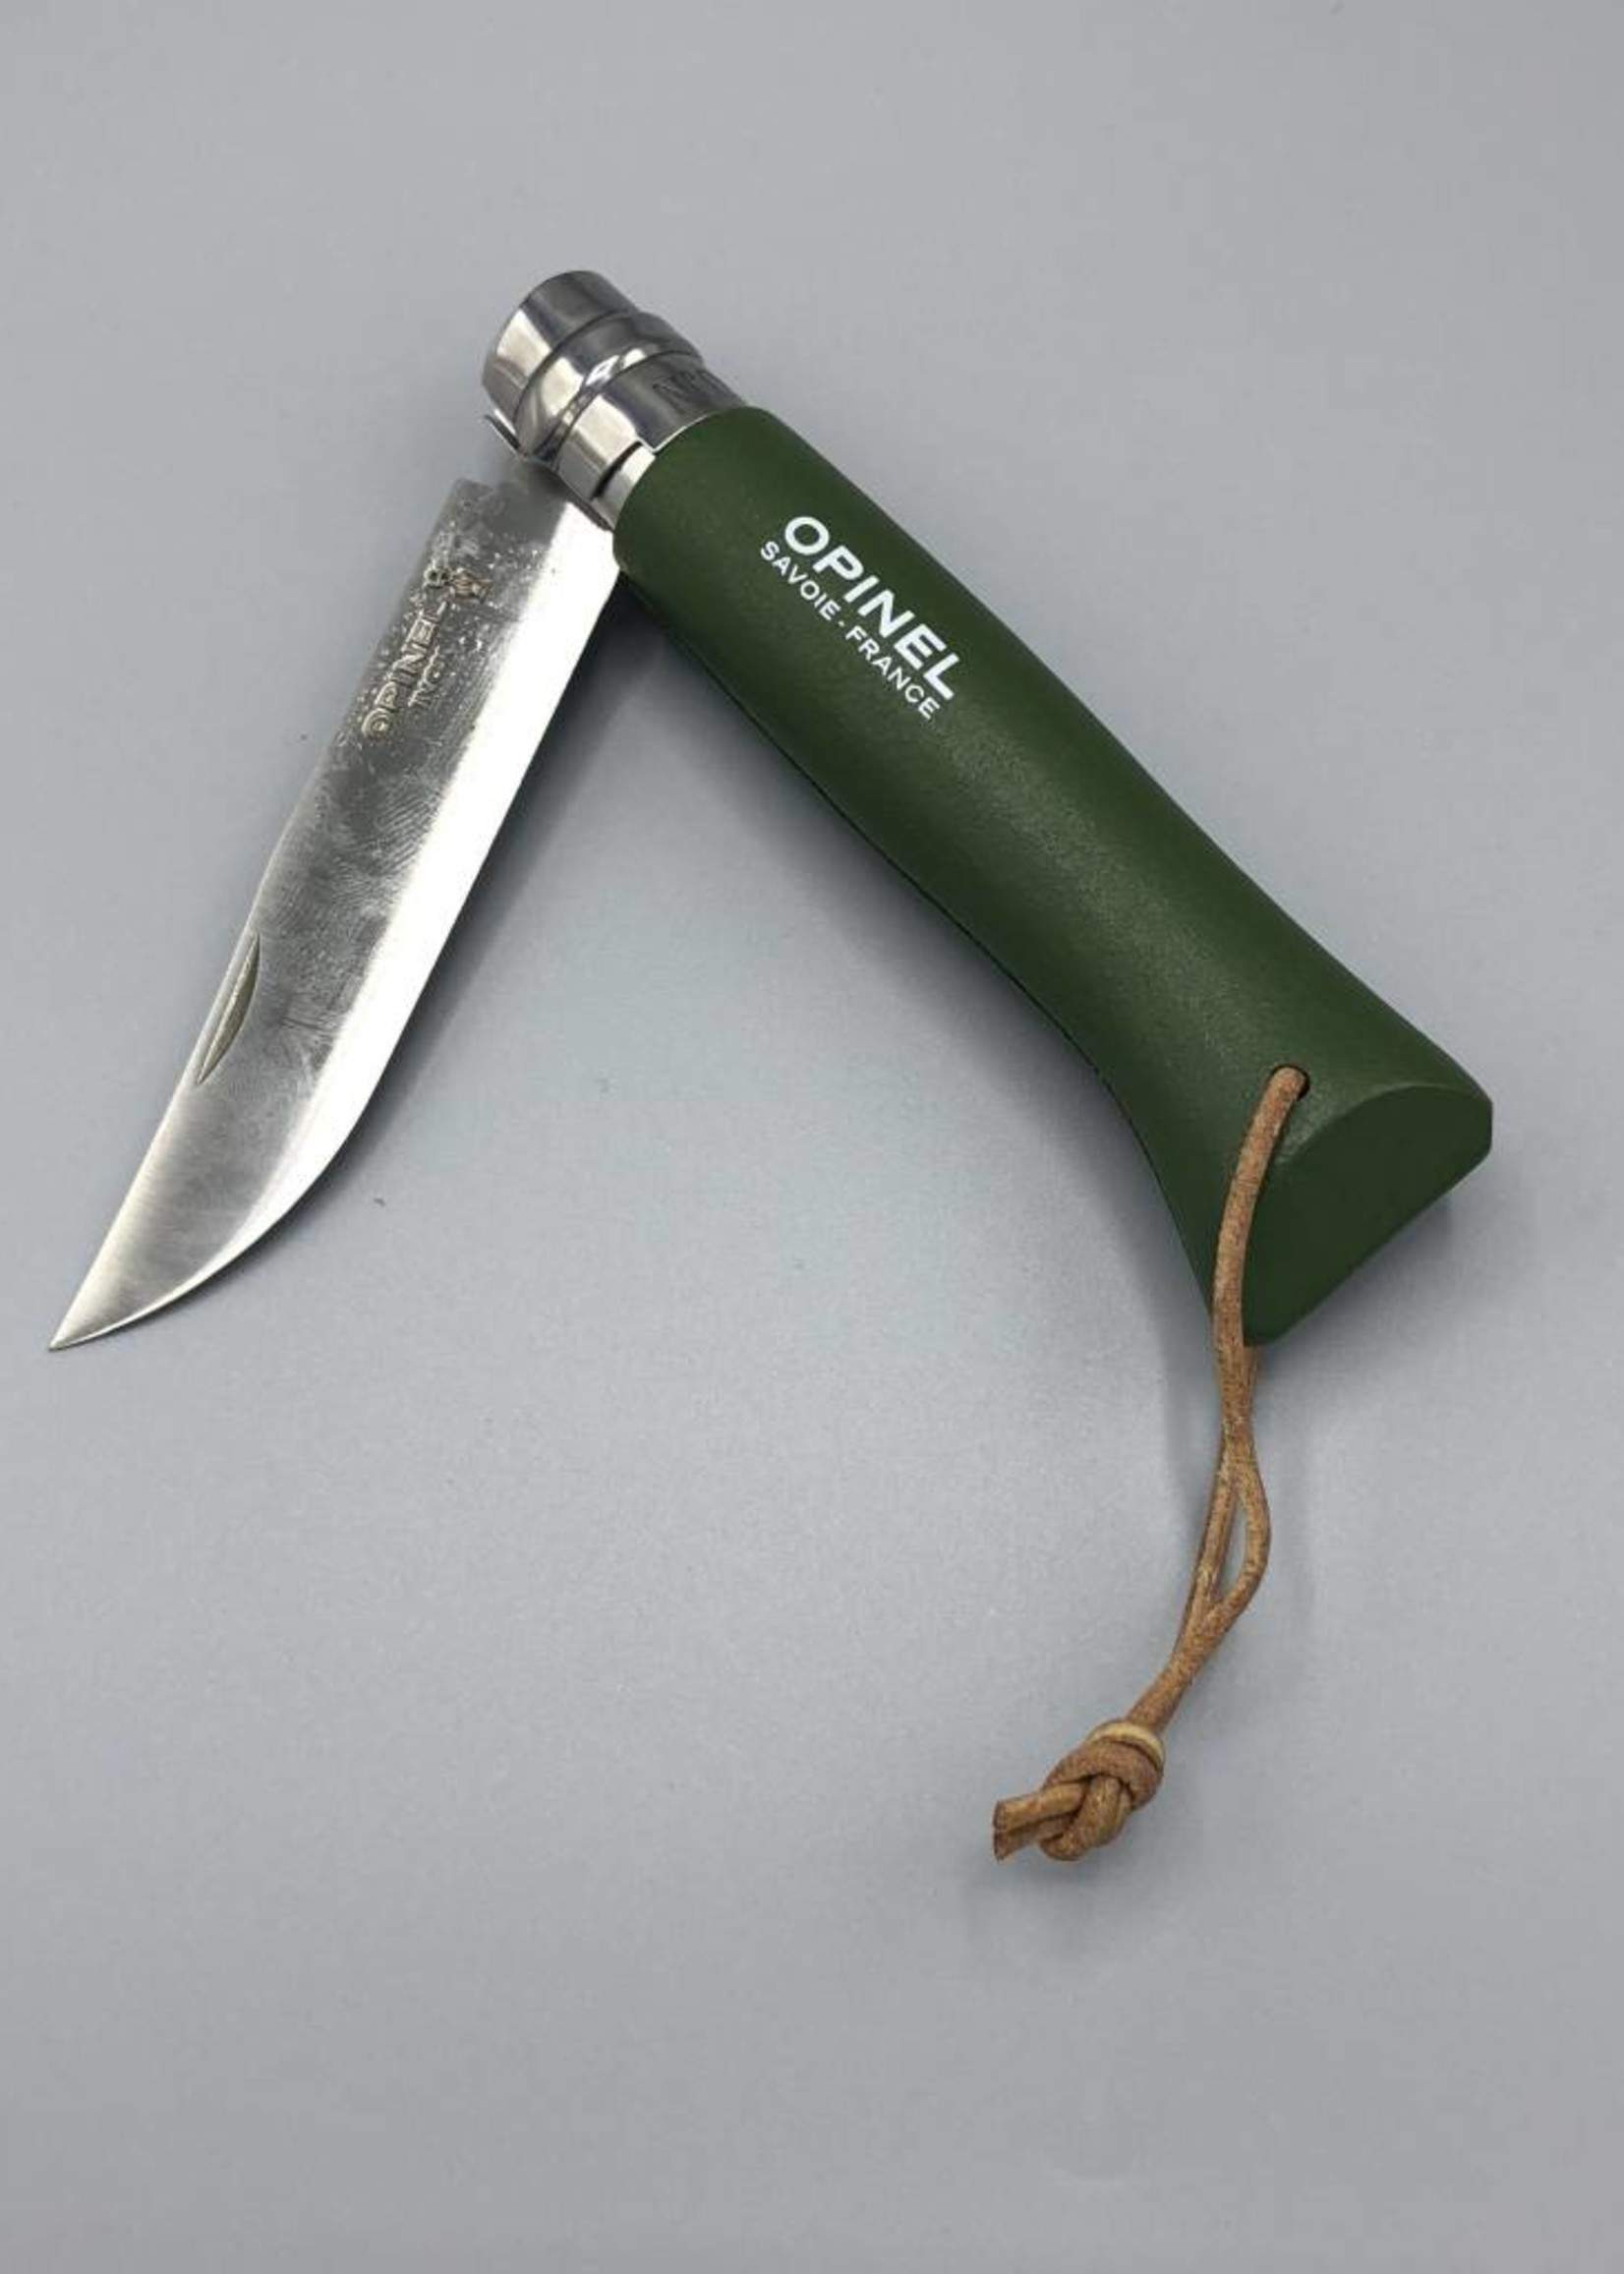 Opinel No8 Origins Folding Knife